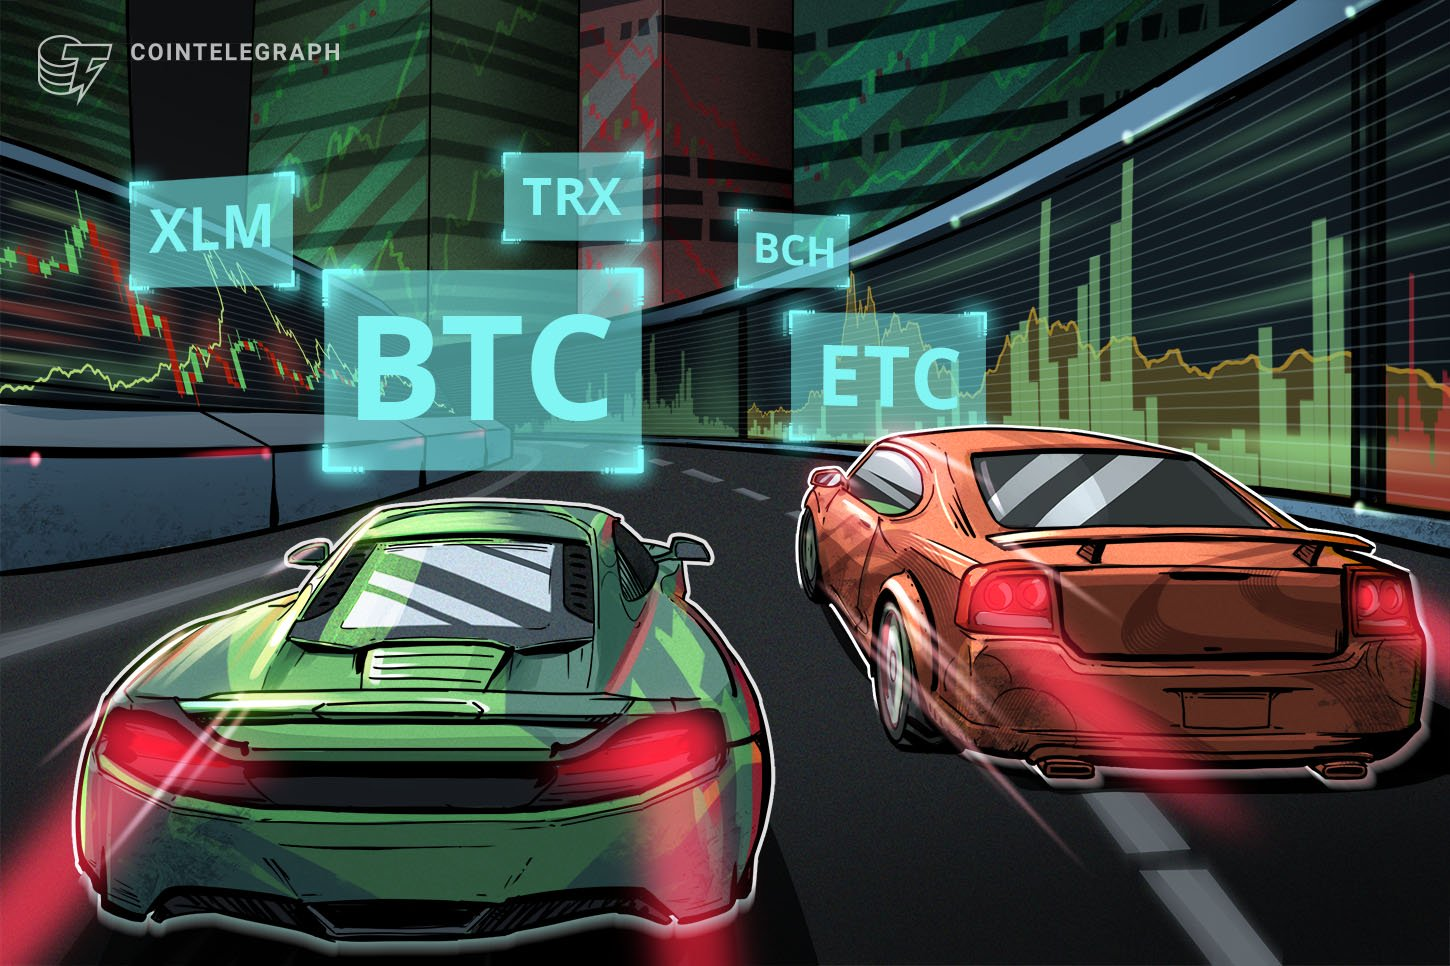 Prime 5 Cryptocurrencies to Watch This Week: BTC, ETC, TRX, BCH, XLM